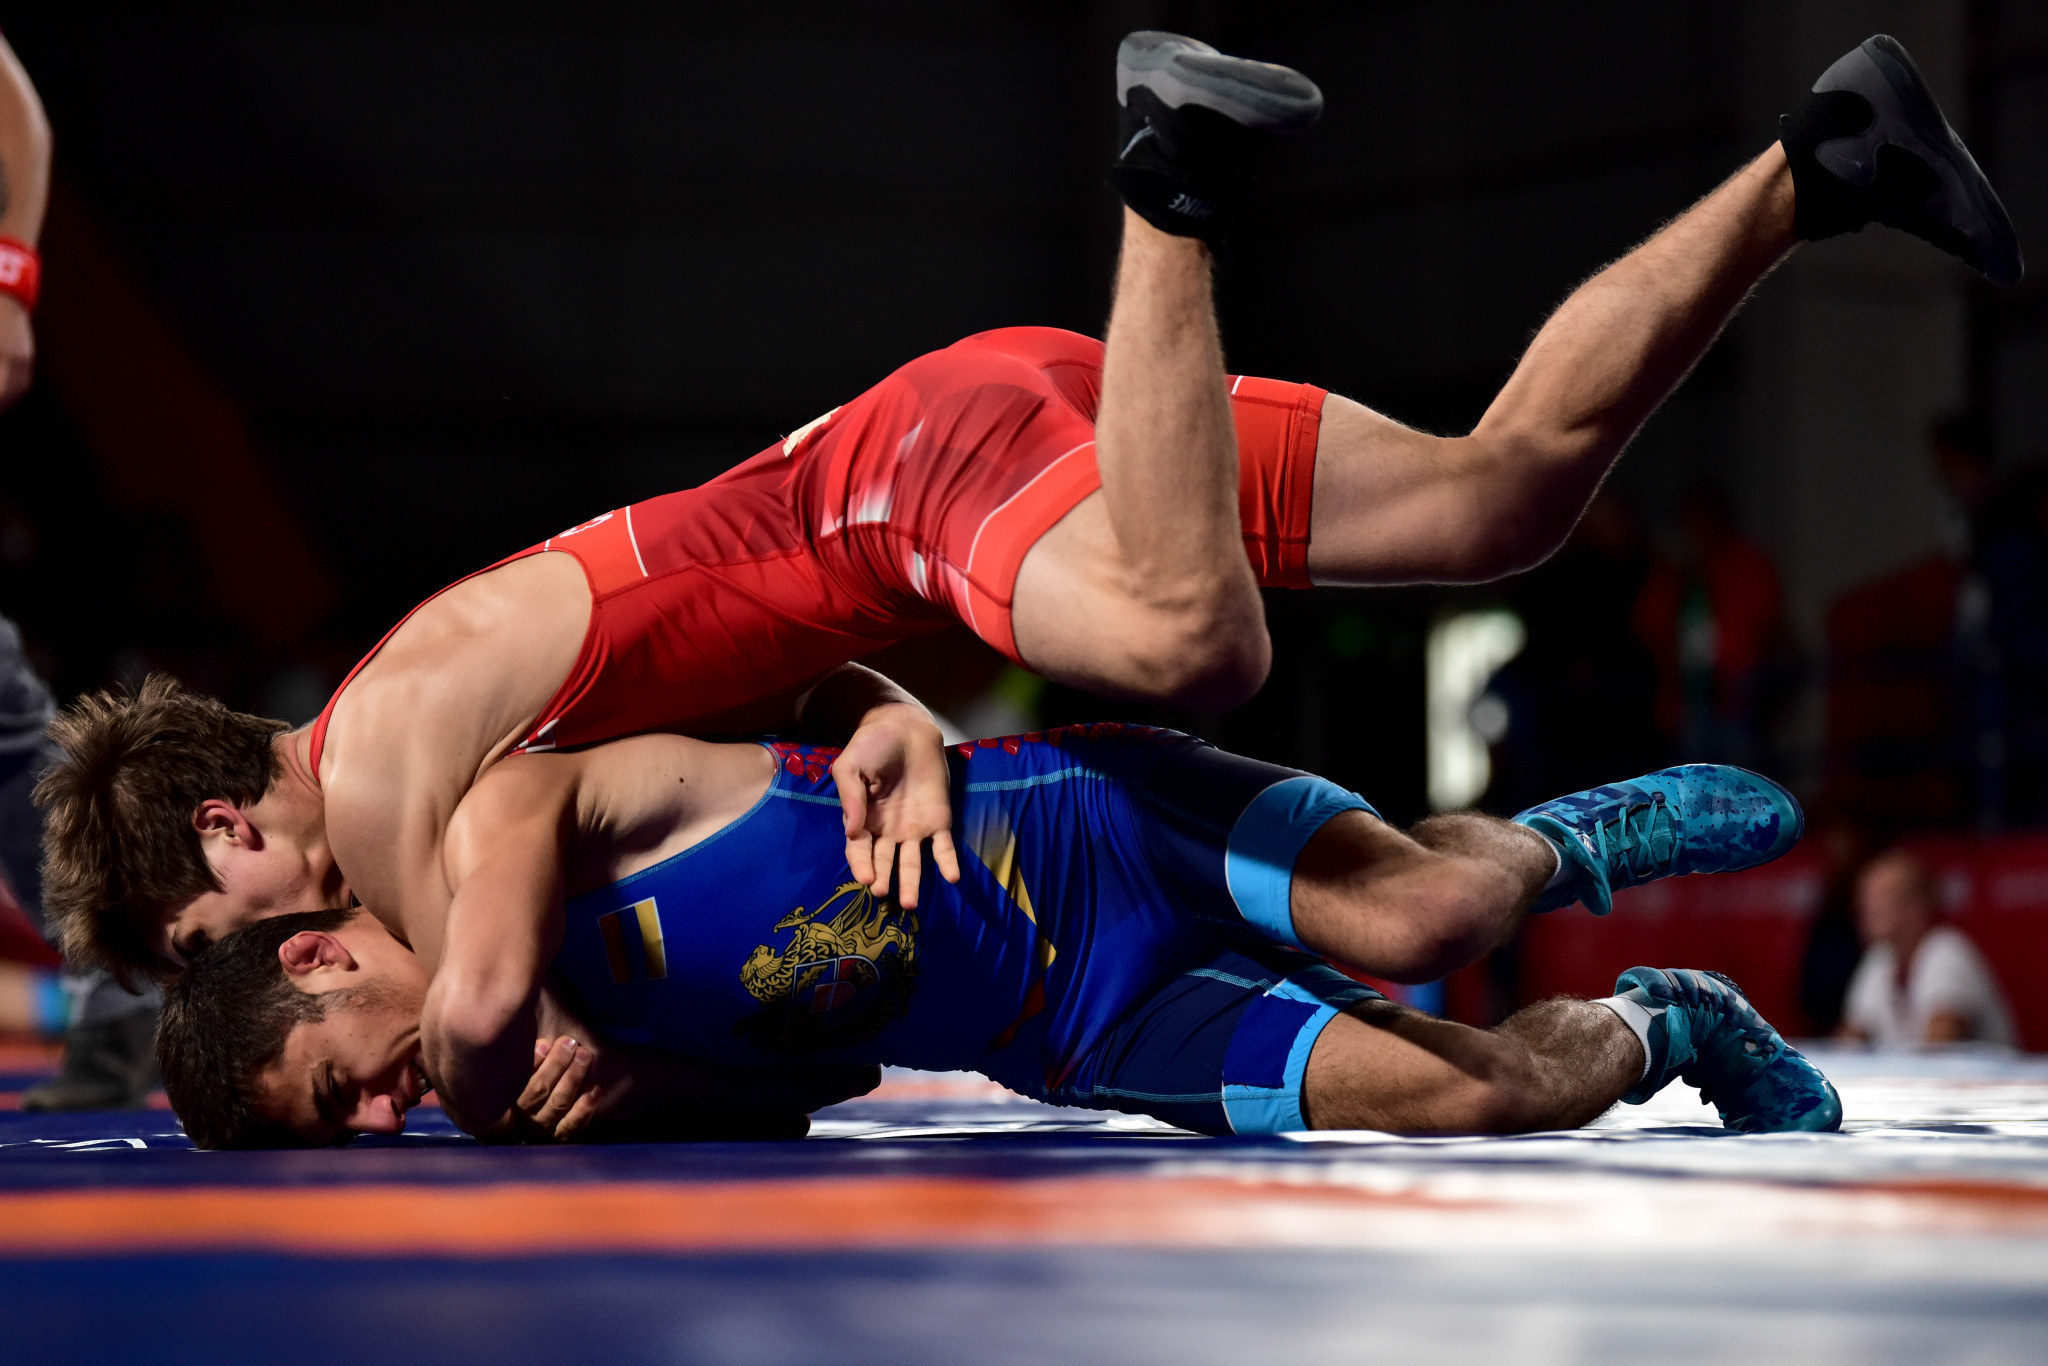 UWW offers financial support for smaller nations to attend Olympic qualifiers